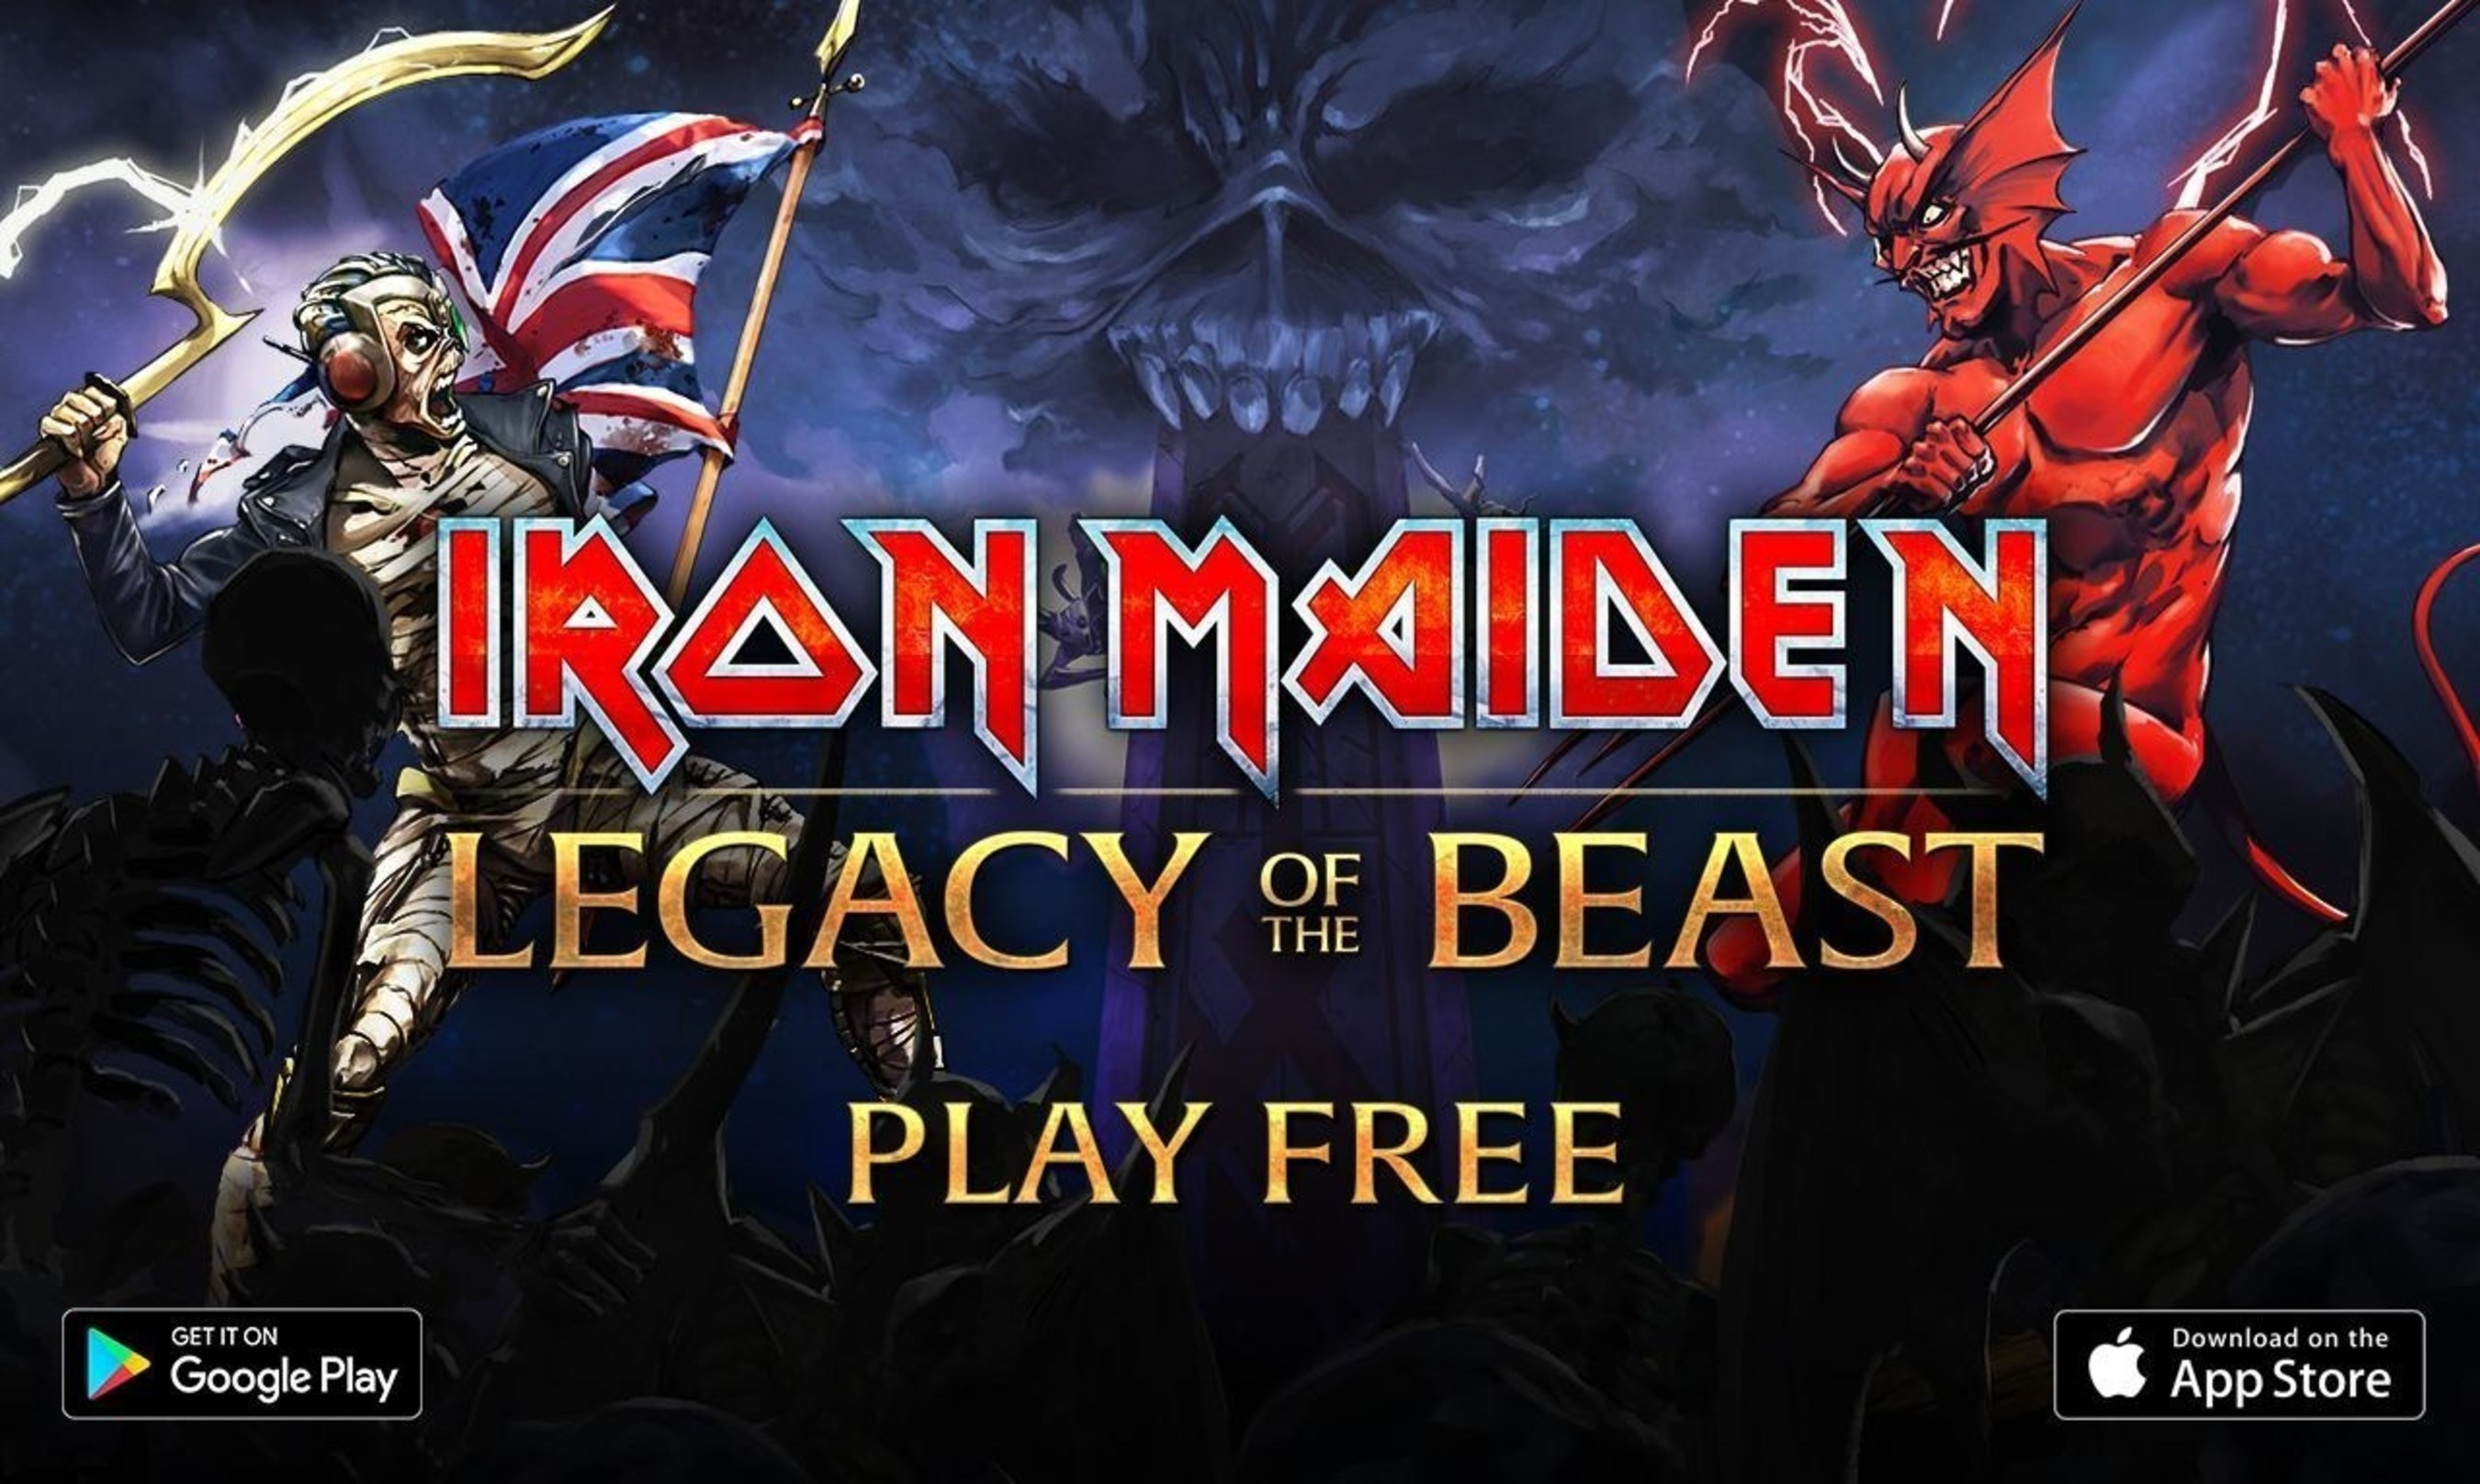 Iron Maiden Legacy of the Beast launches today on Android and IOS devices. (PRNewsFoto/Nodding Frog)